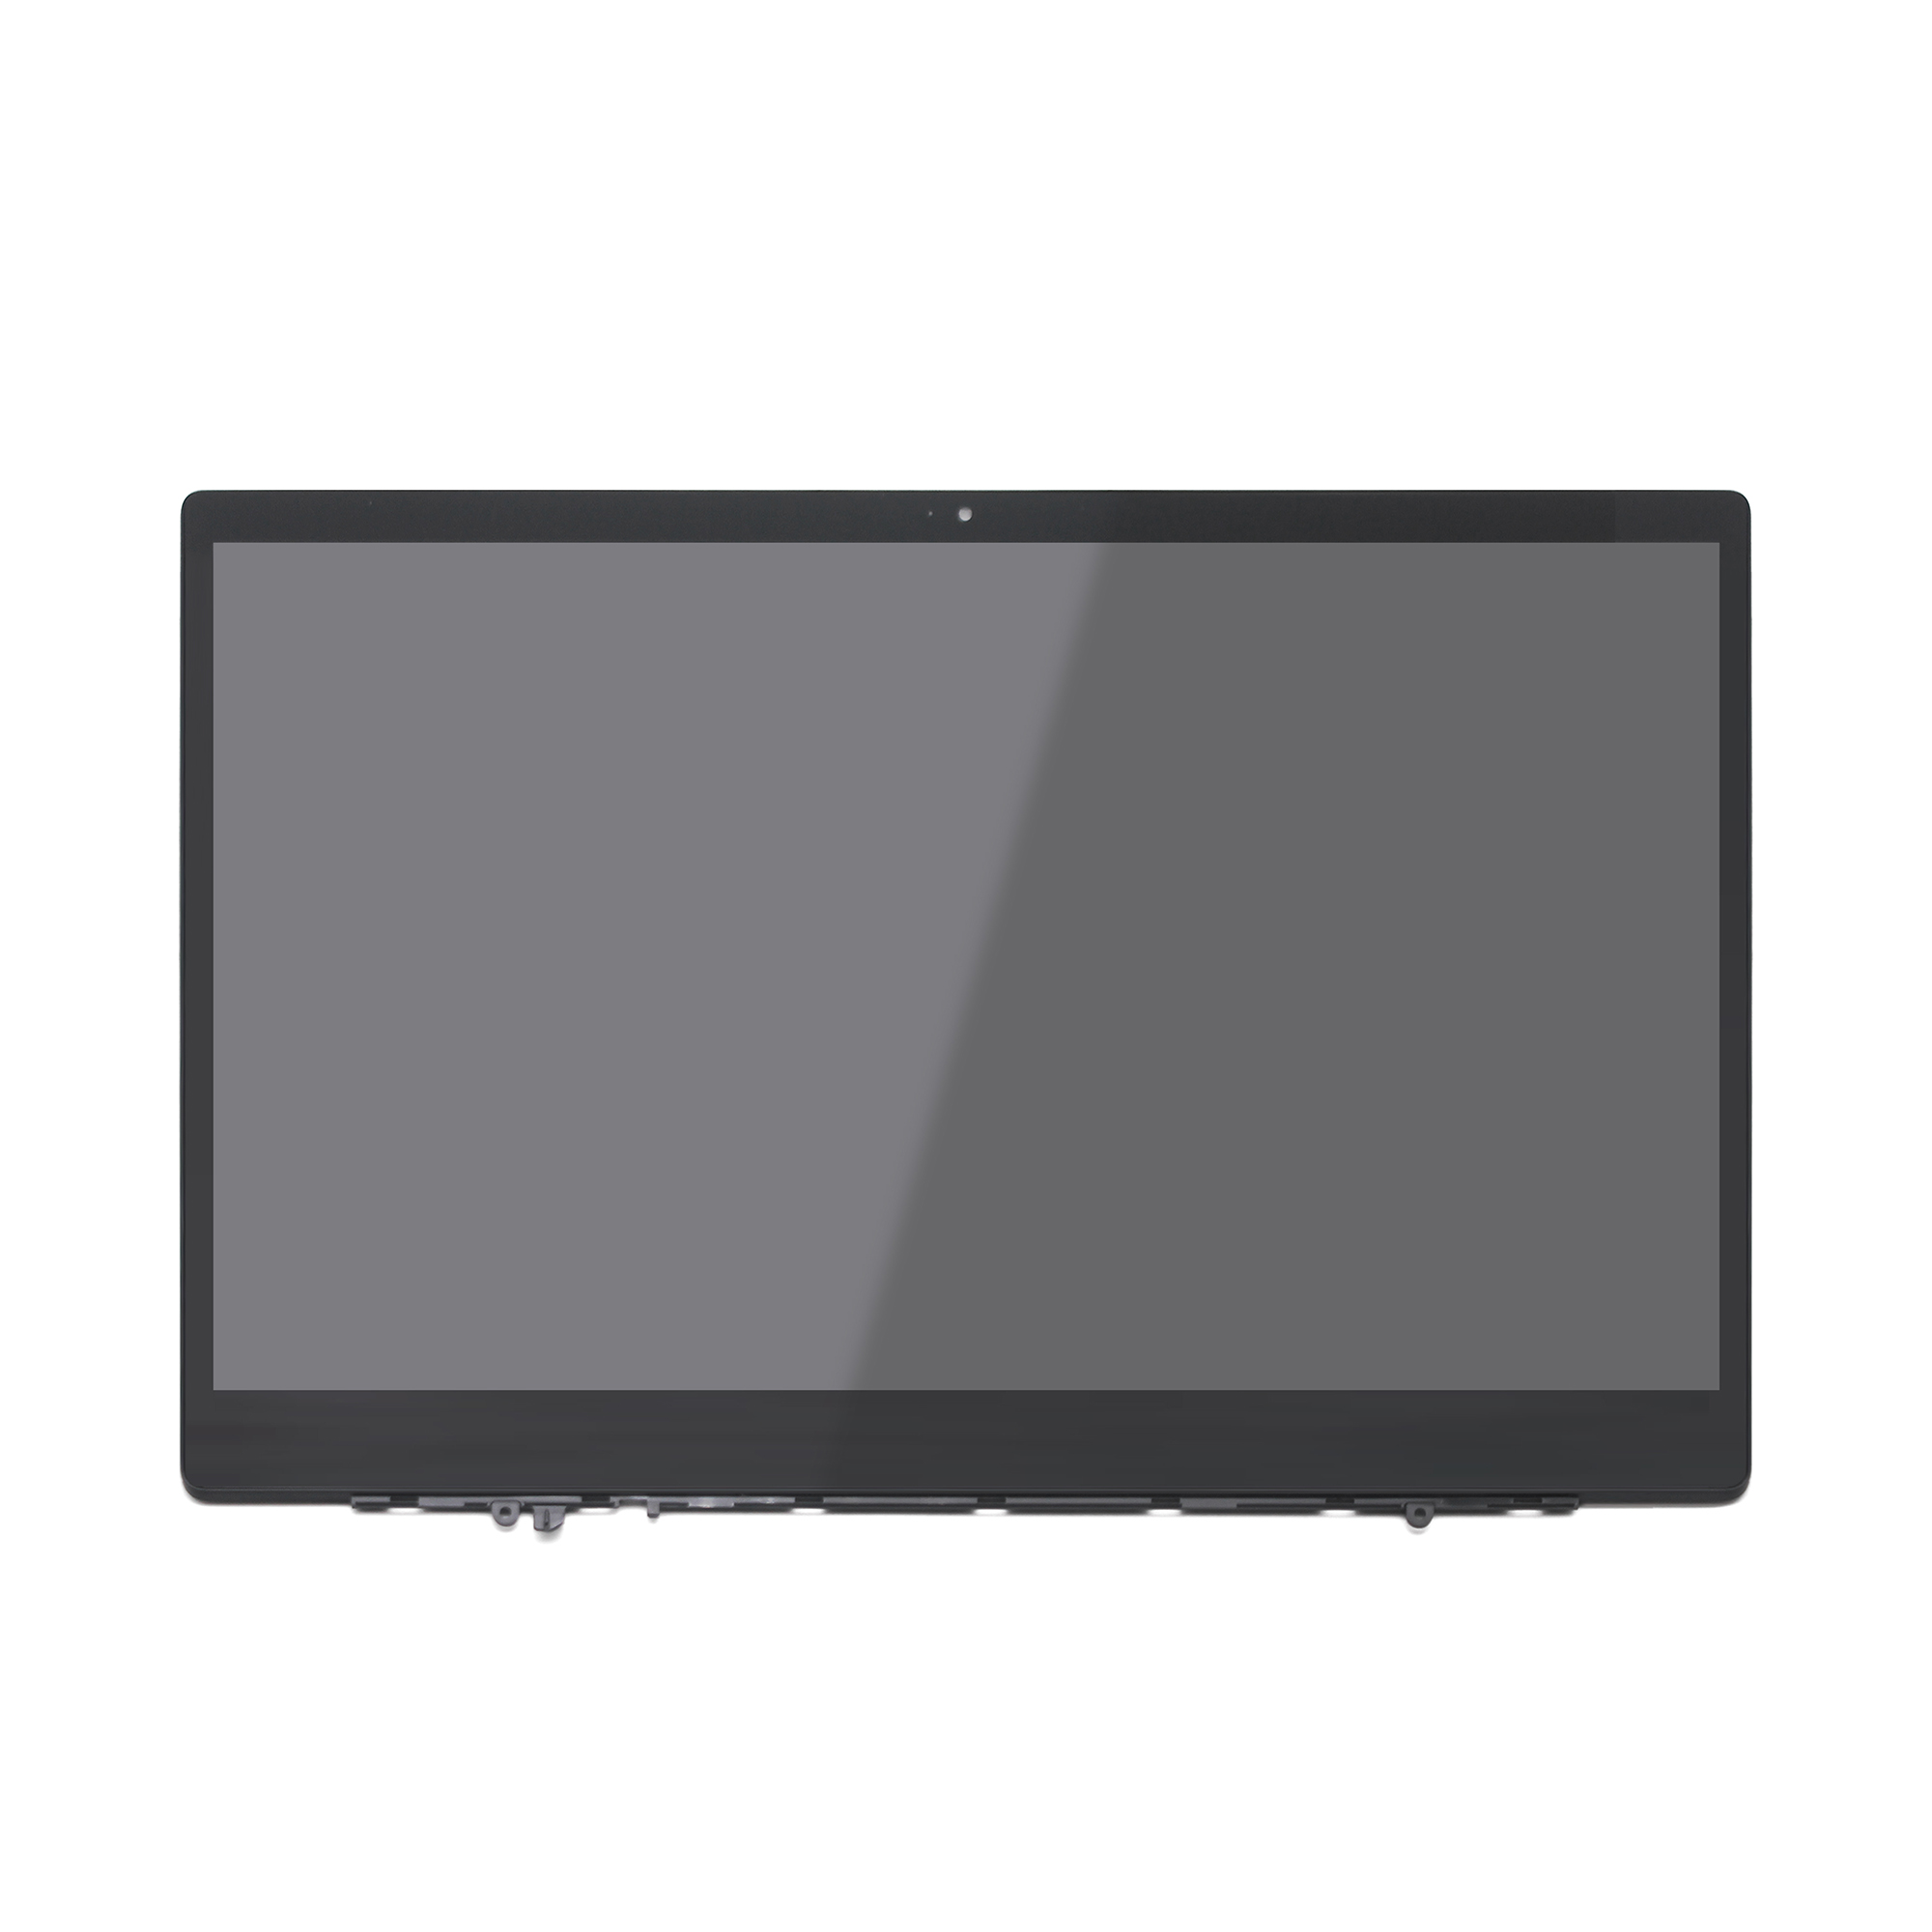 15.6'' For Xiaomi Mi Laptop Air Pro 15.6 Inch Notebook IPS LCD Screen Display Matrix Glass Assembly+Frame 1920x1080 NV156FHM-N61